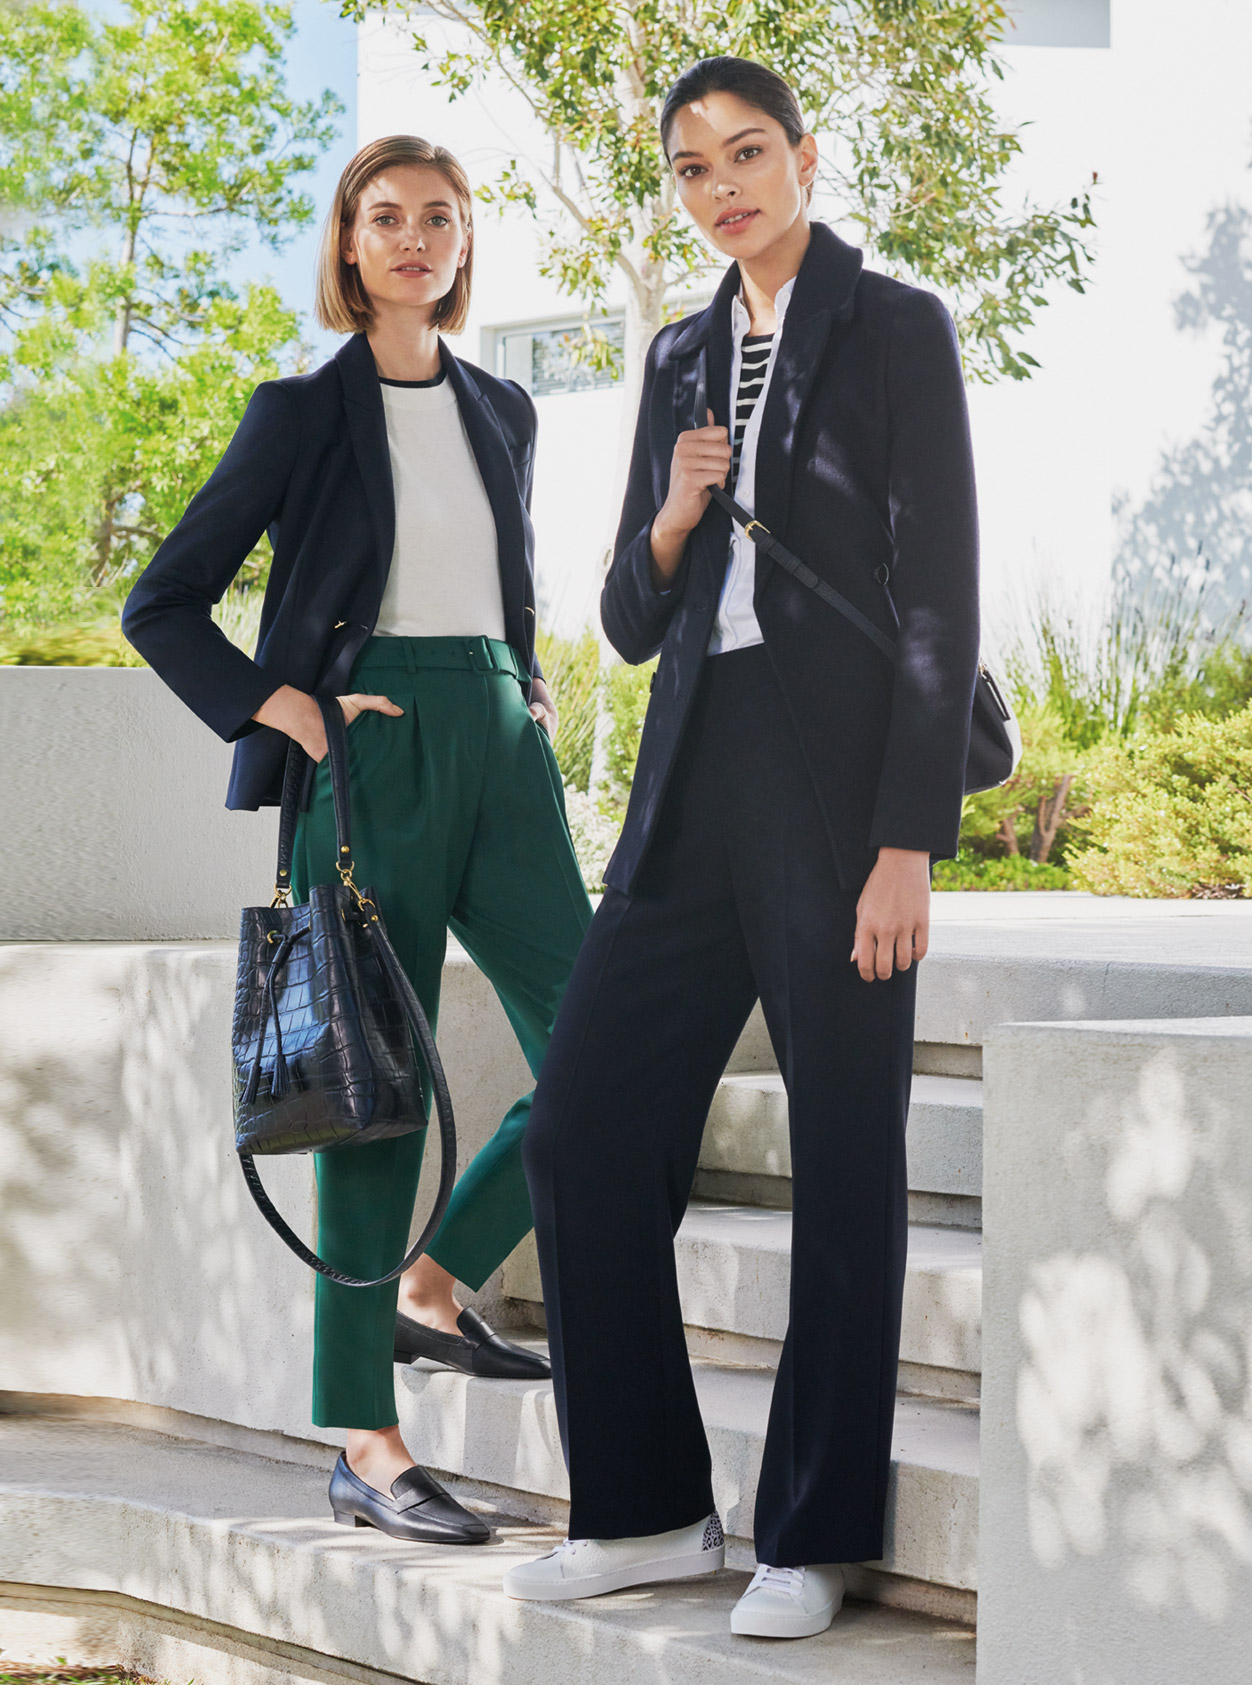 Women's trouser suit outfits, the outfit on the left pairs the suit with a white top, green tailored trousers, black loafers and a black leather tote bag. The outfit on the right pairs the suit with a stripey top, a black crossbody bag, wide leg trousers and white trainers, all from Hobbs.